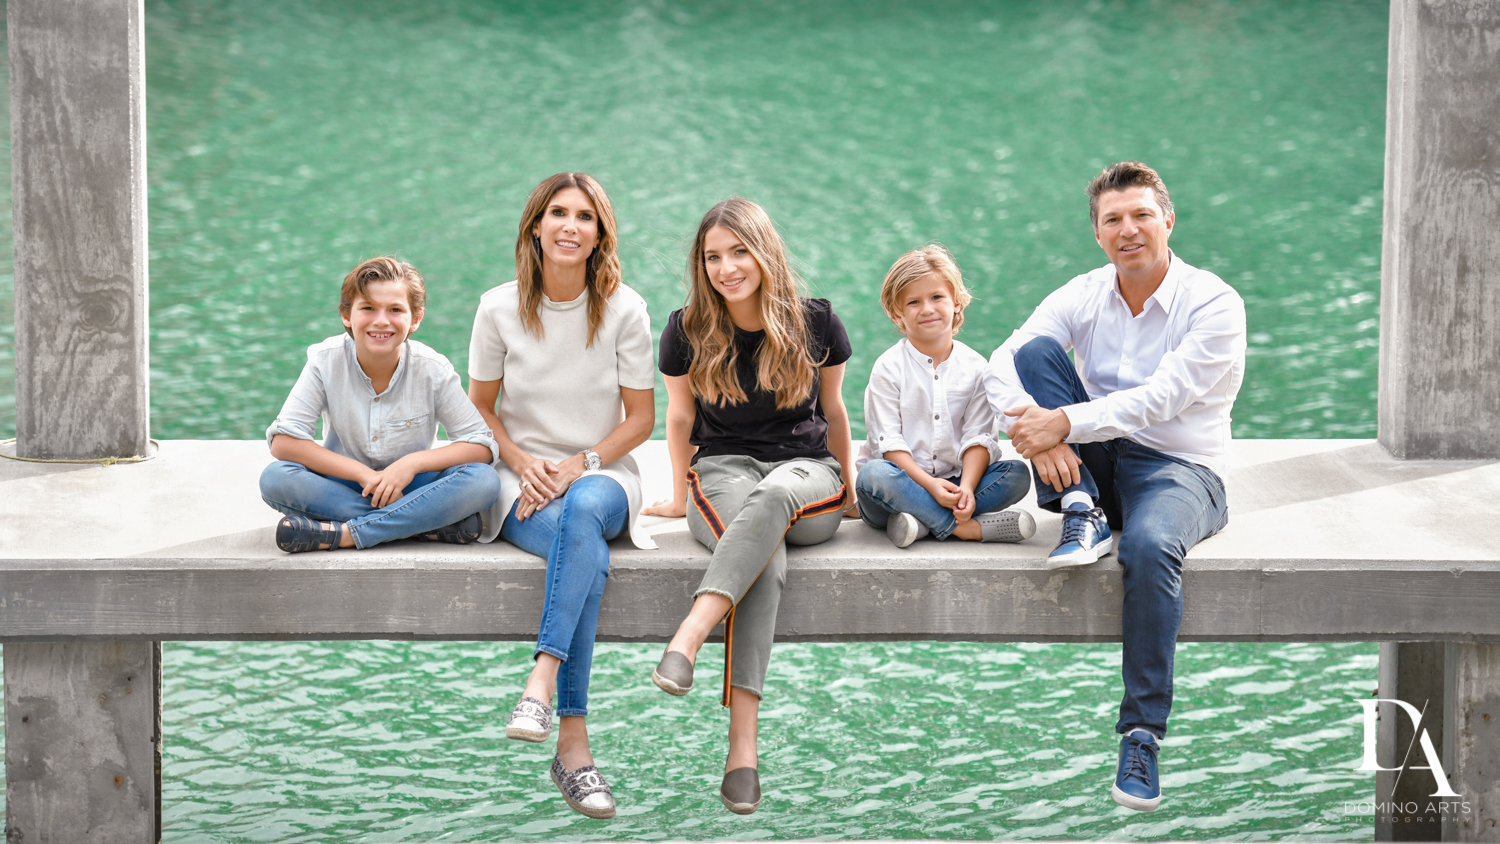 Family at Waterfront Photo Session in Miami by Domino Arts Photography